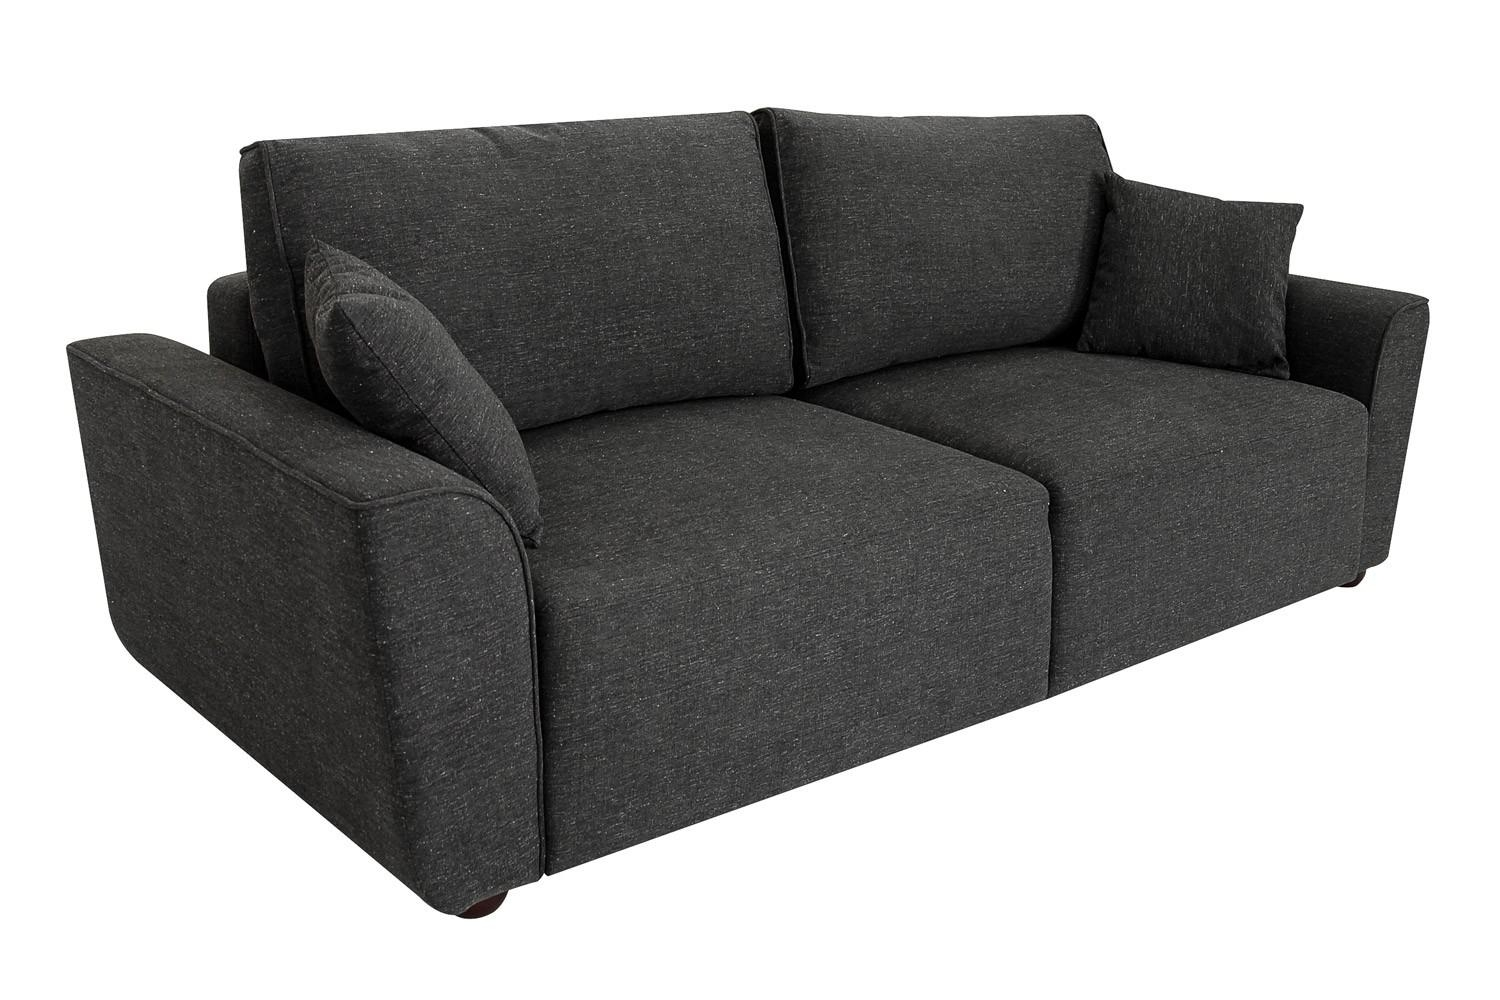 Queen Wallhugger Sofa Bed | Tweed Fabric Sofa Sleeper Evander regarding Sofa Beds Queen